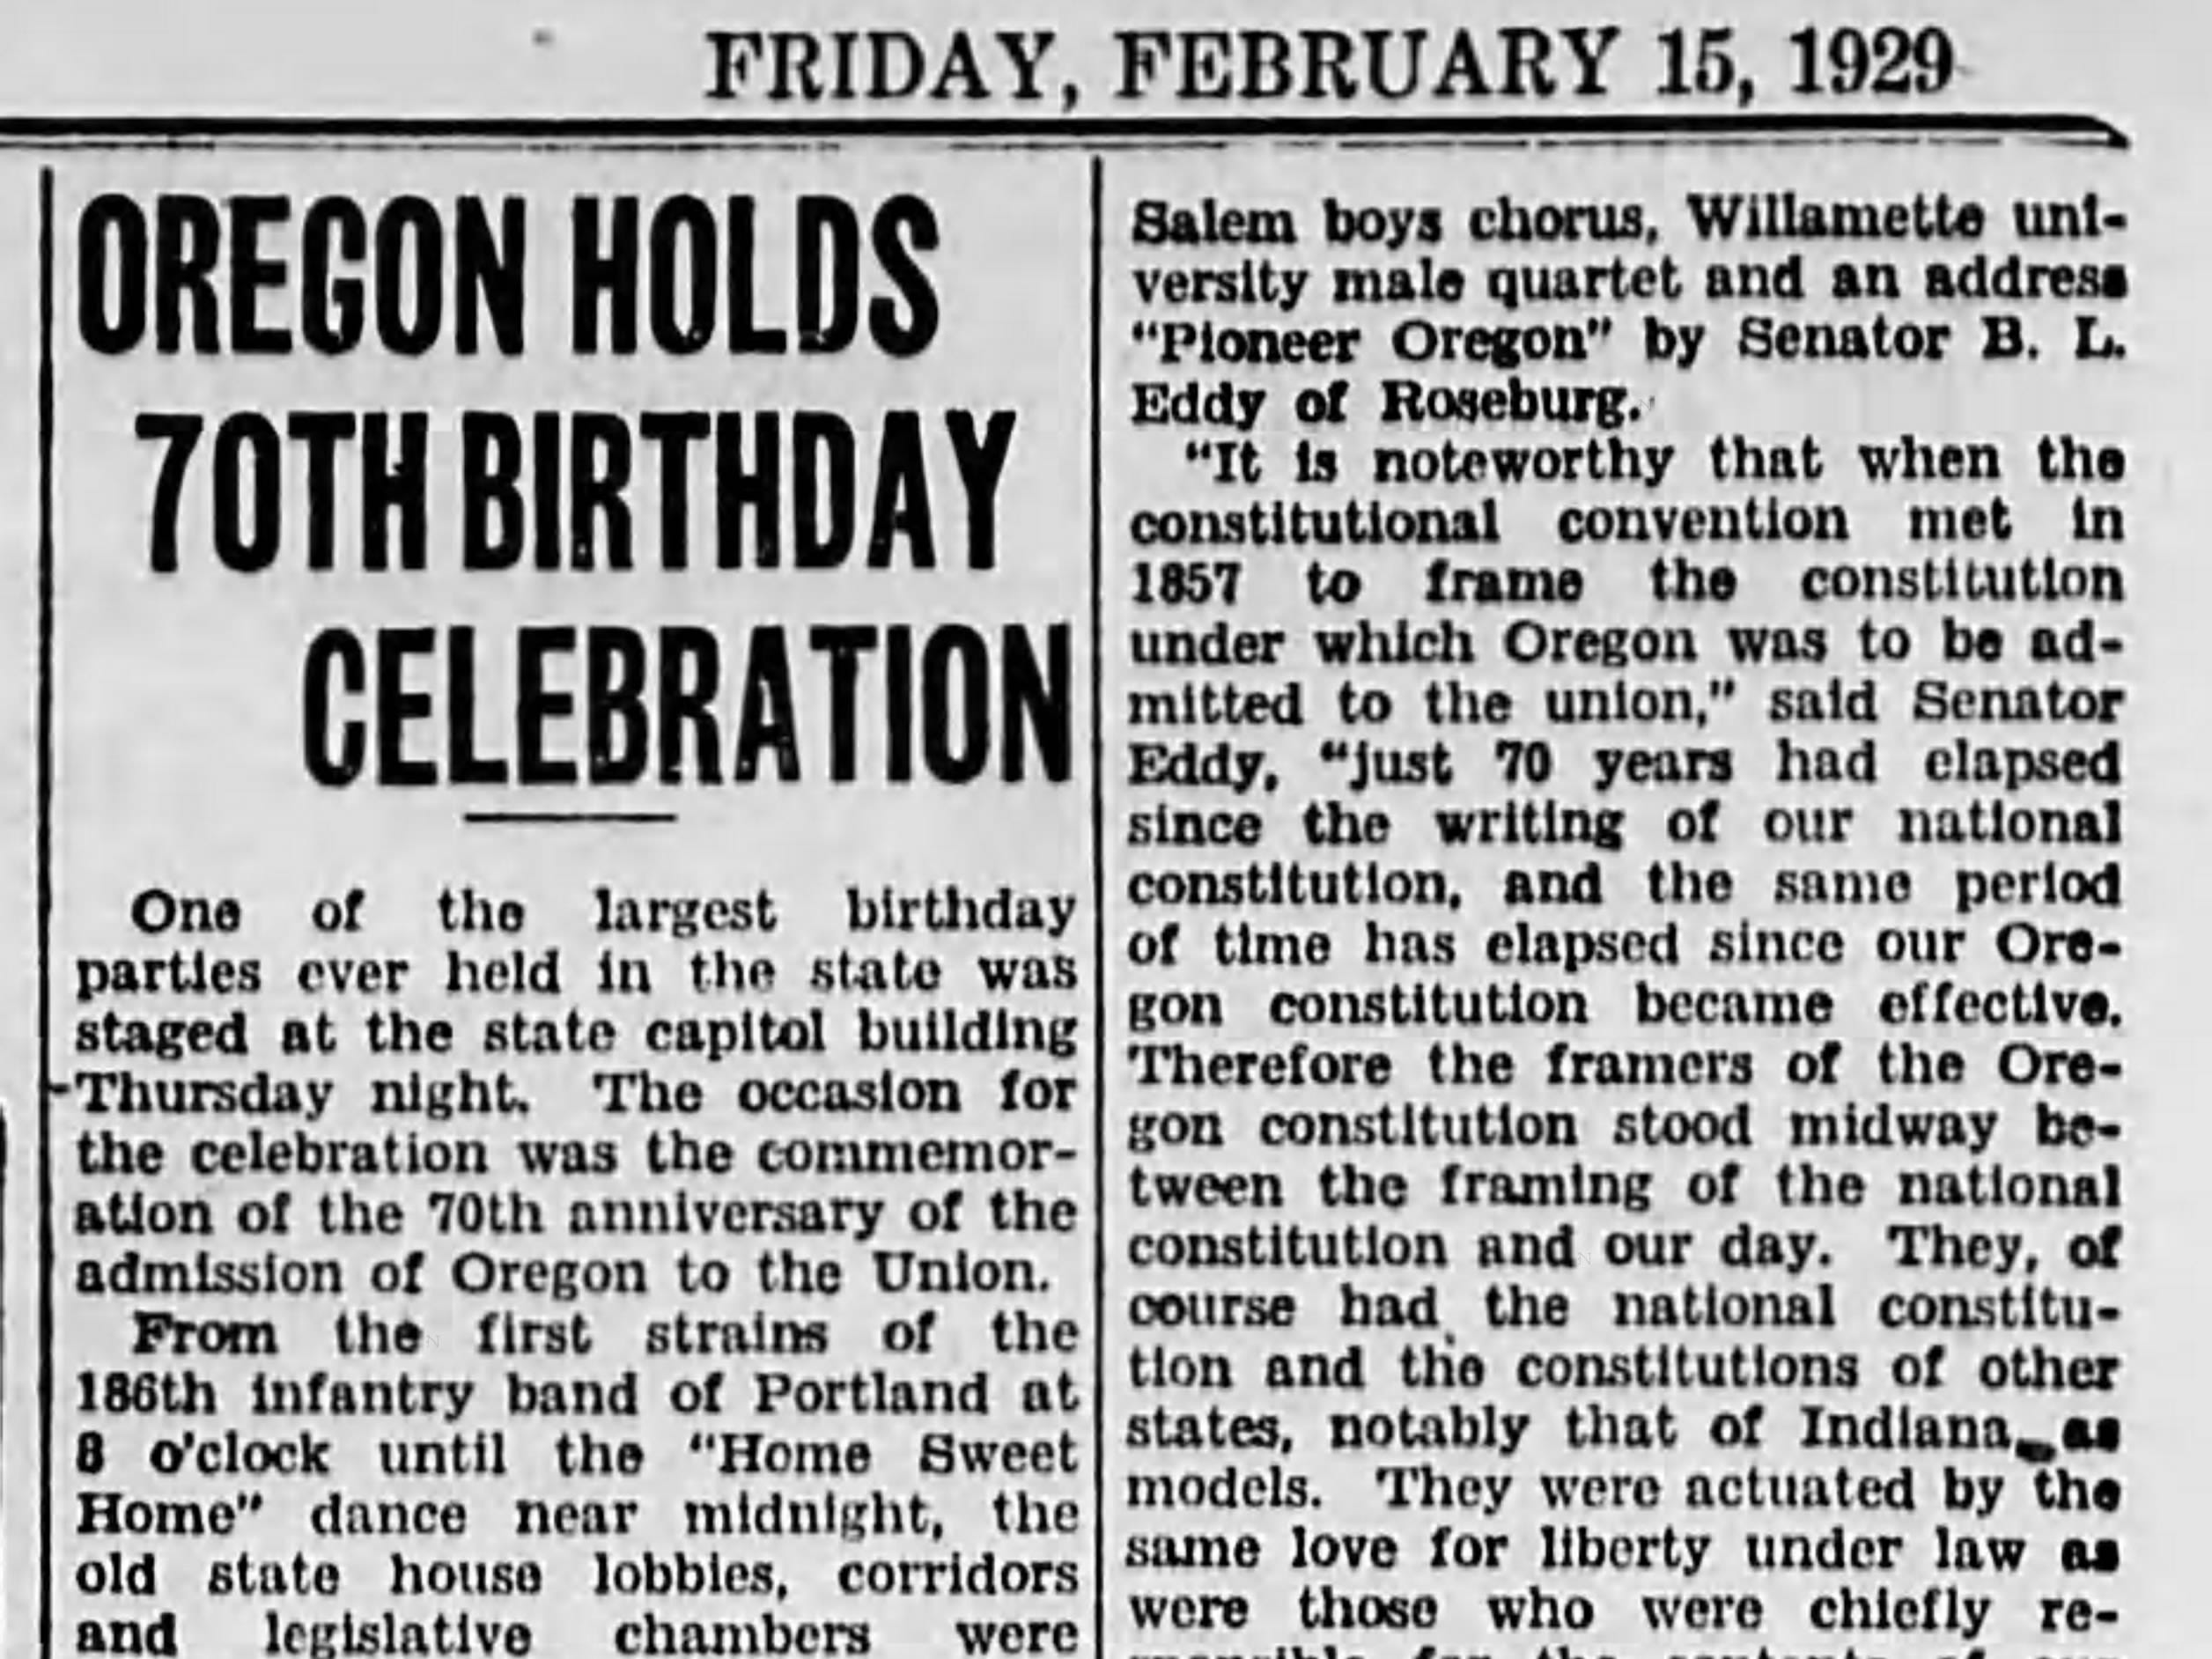 Marking 70 years of statehood in 1929.